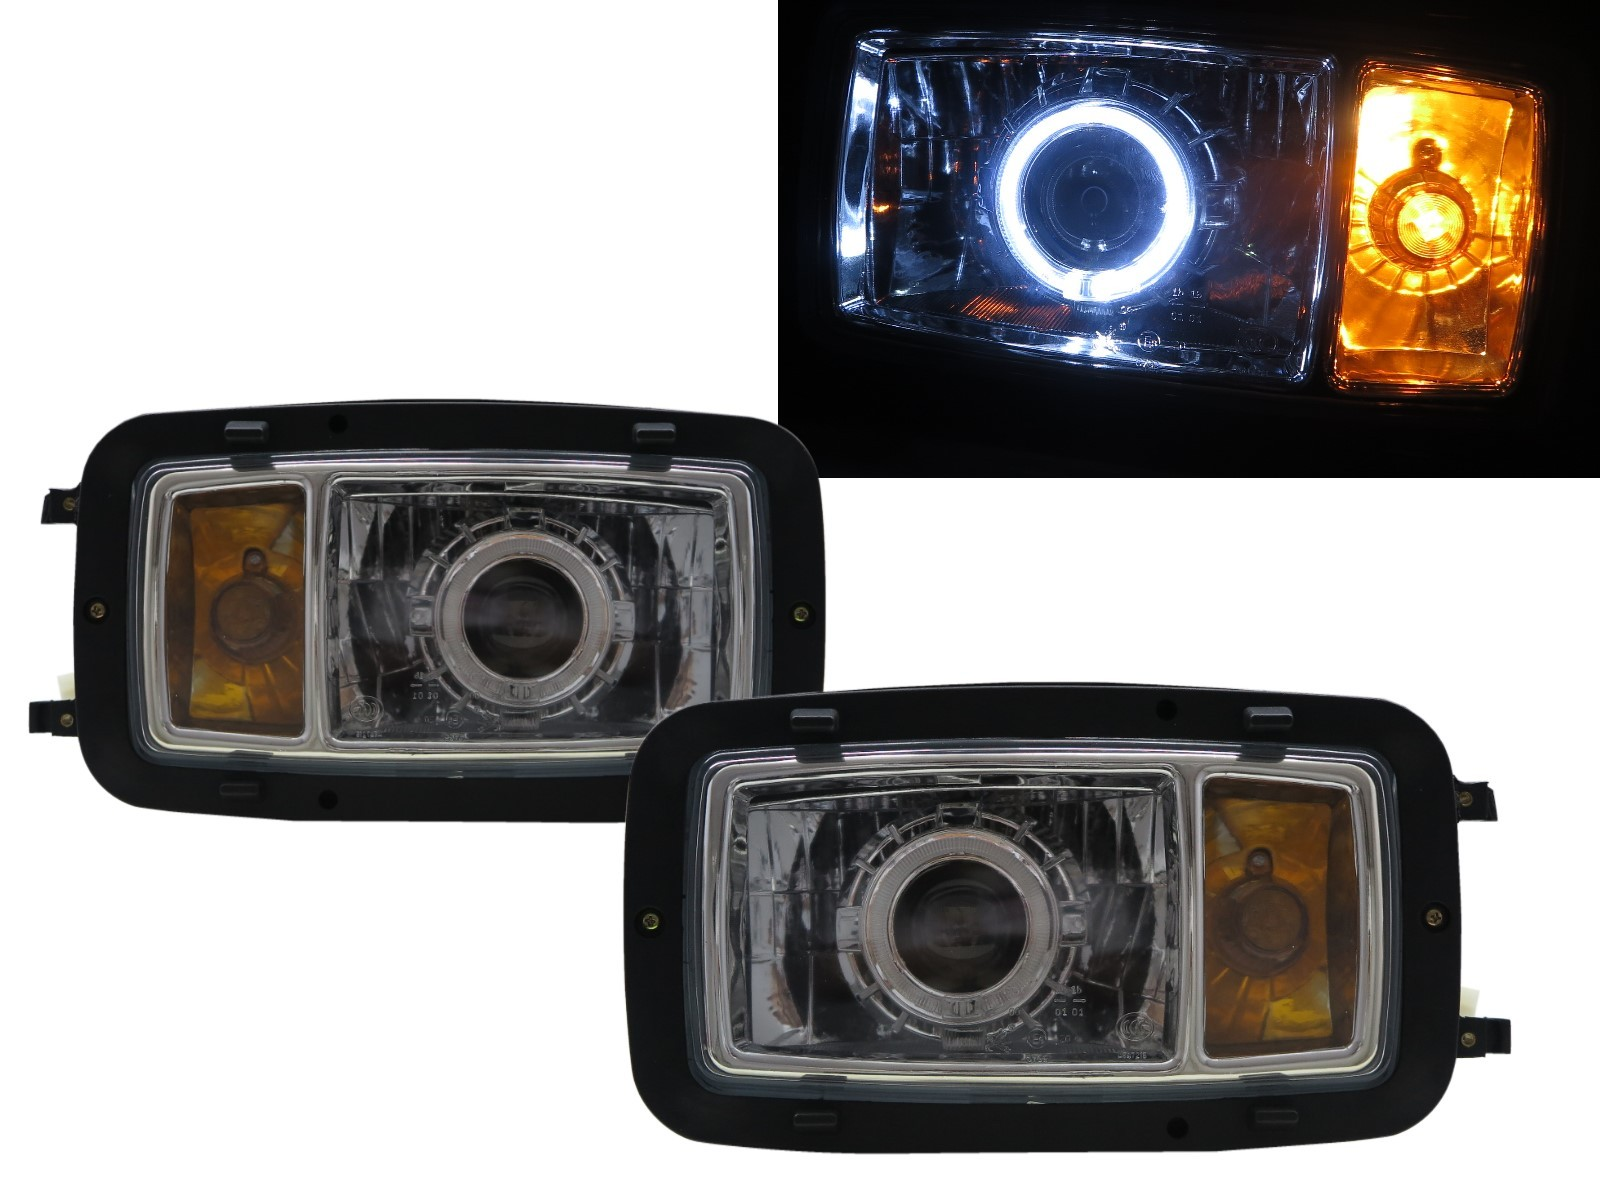 CrazyTheGod TRUCK-NG NG80 1980-1991 Truck 2D Guide LED Angel-Eye Projector HID Headlight Headlamp Chrome for Mercedes-Benz RHD